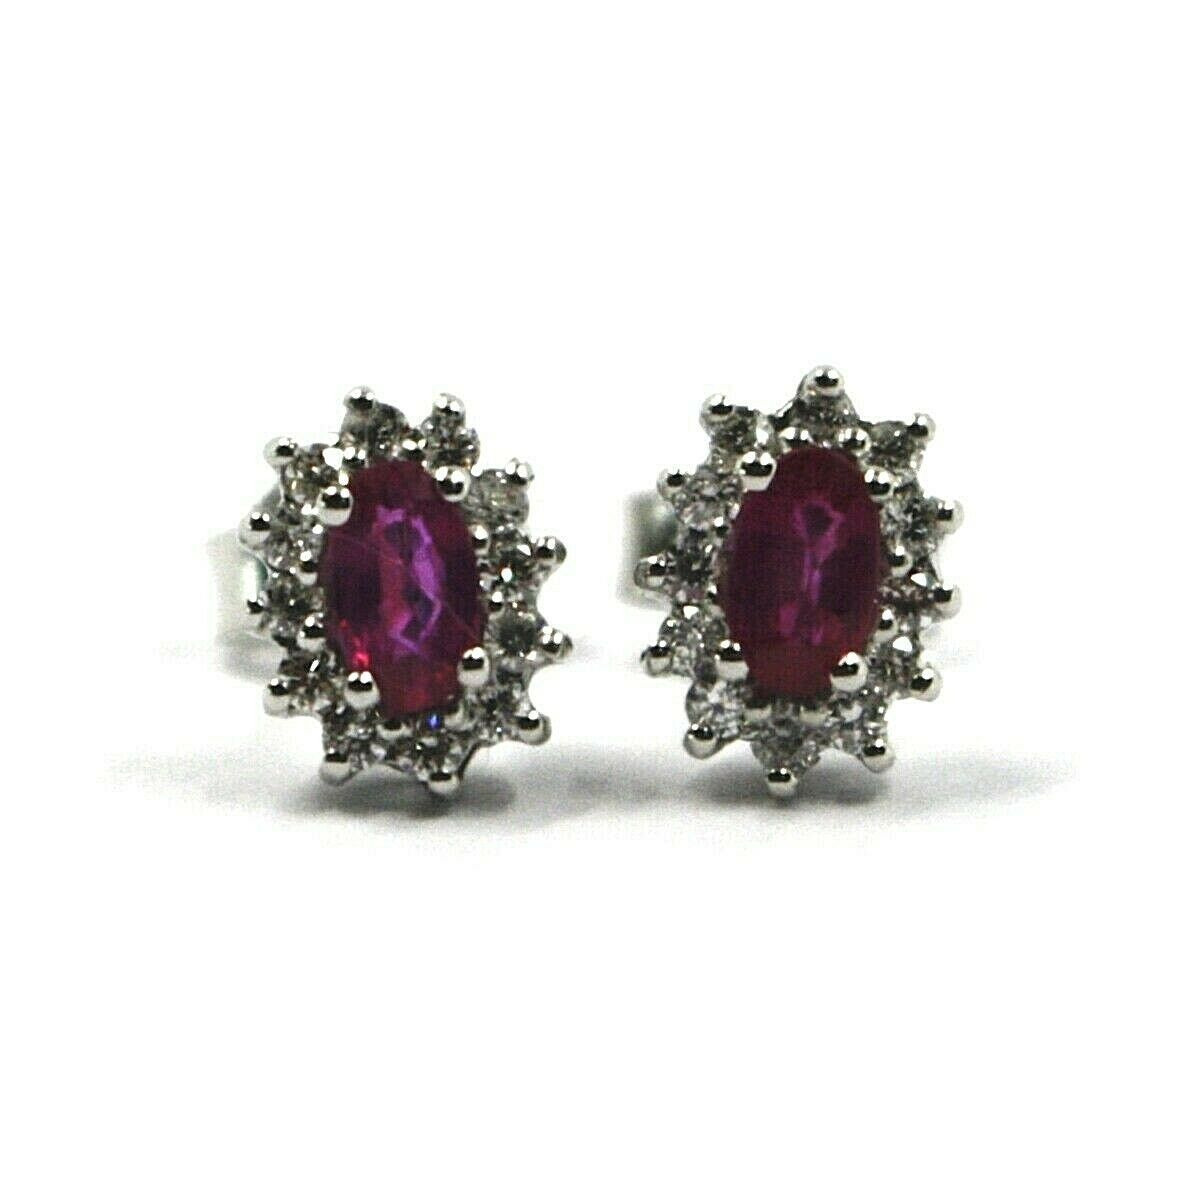 18K WHITE GOLD FLOWER EARRINGS OVAL RUBY 0.55 CARATS, DIAMONDS FRAME 0.28 CARATS